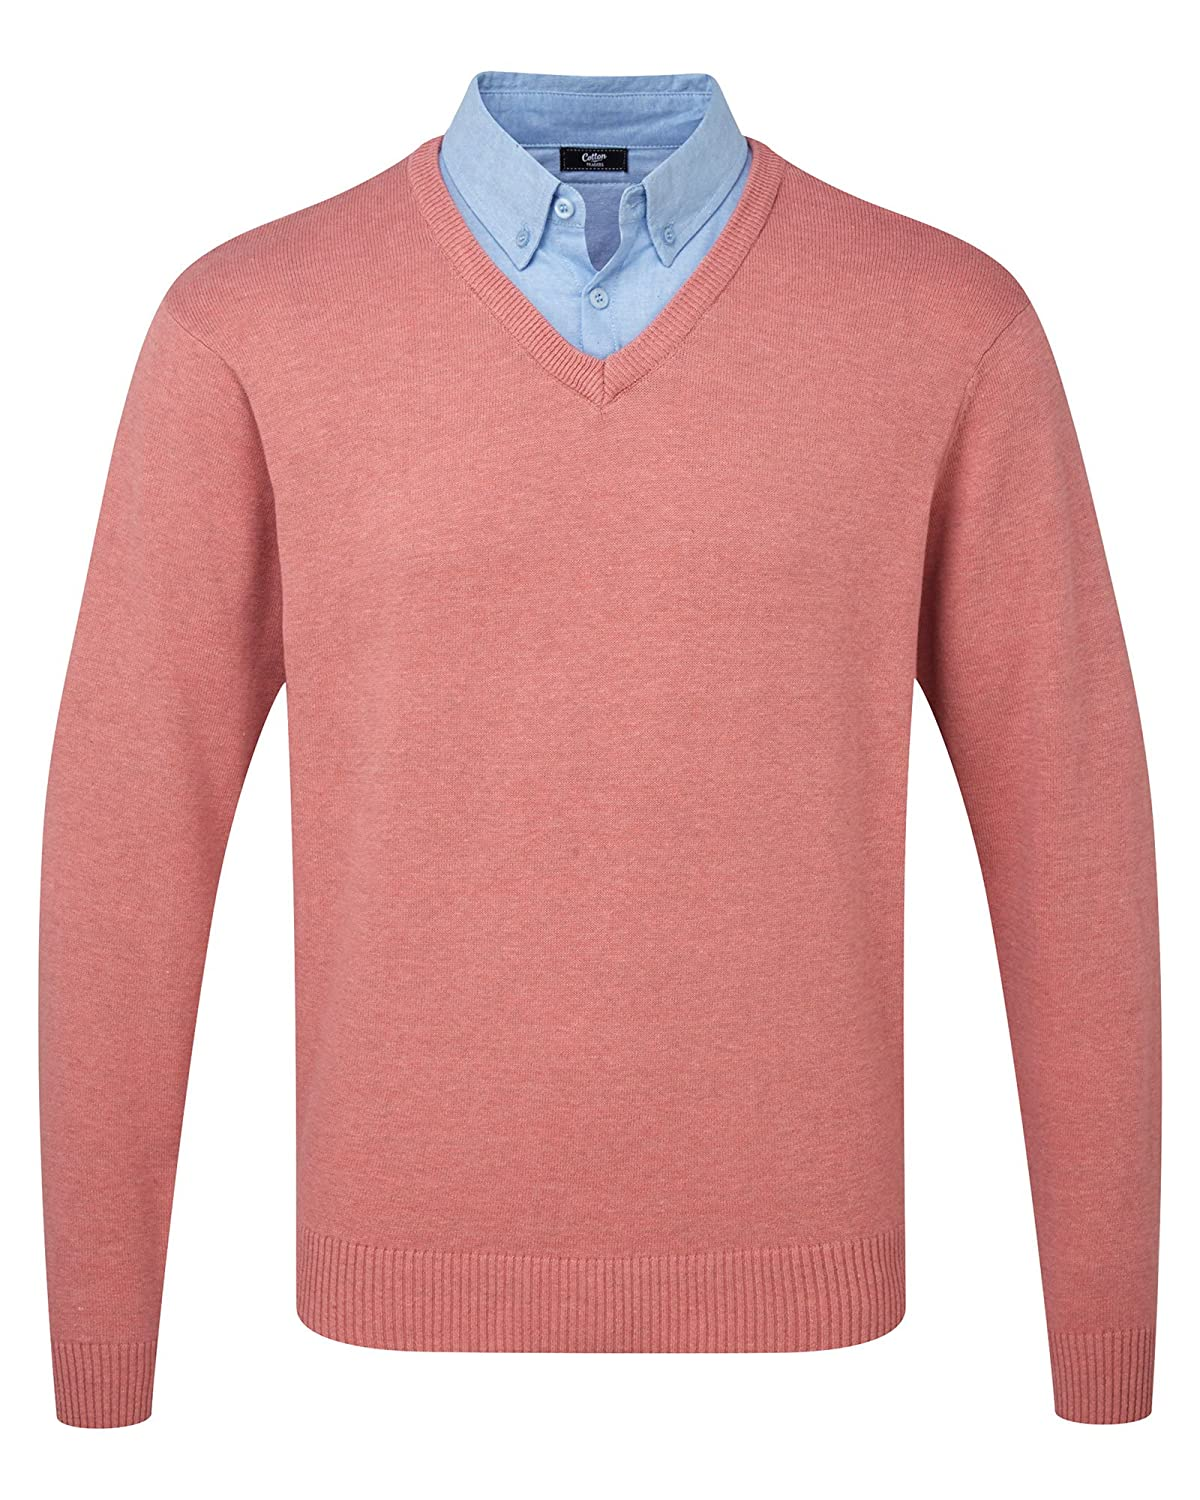 Cotton Traders Mens Casual Mock Shirt And V Neck Jumper Sweater Knitwear